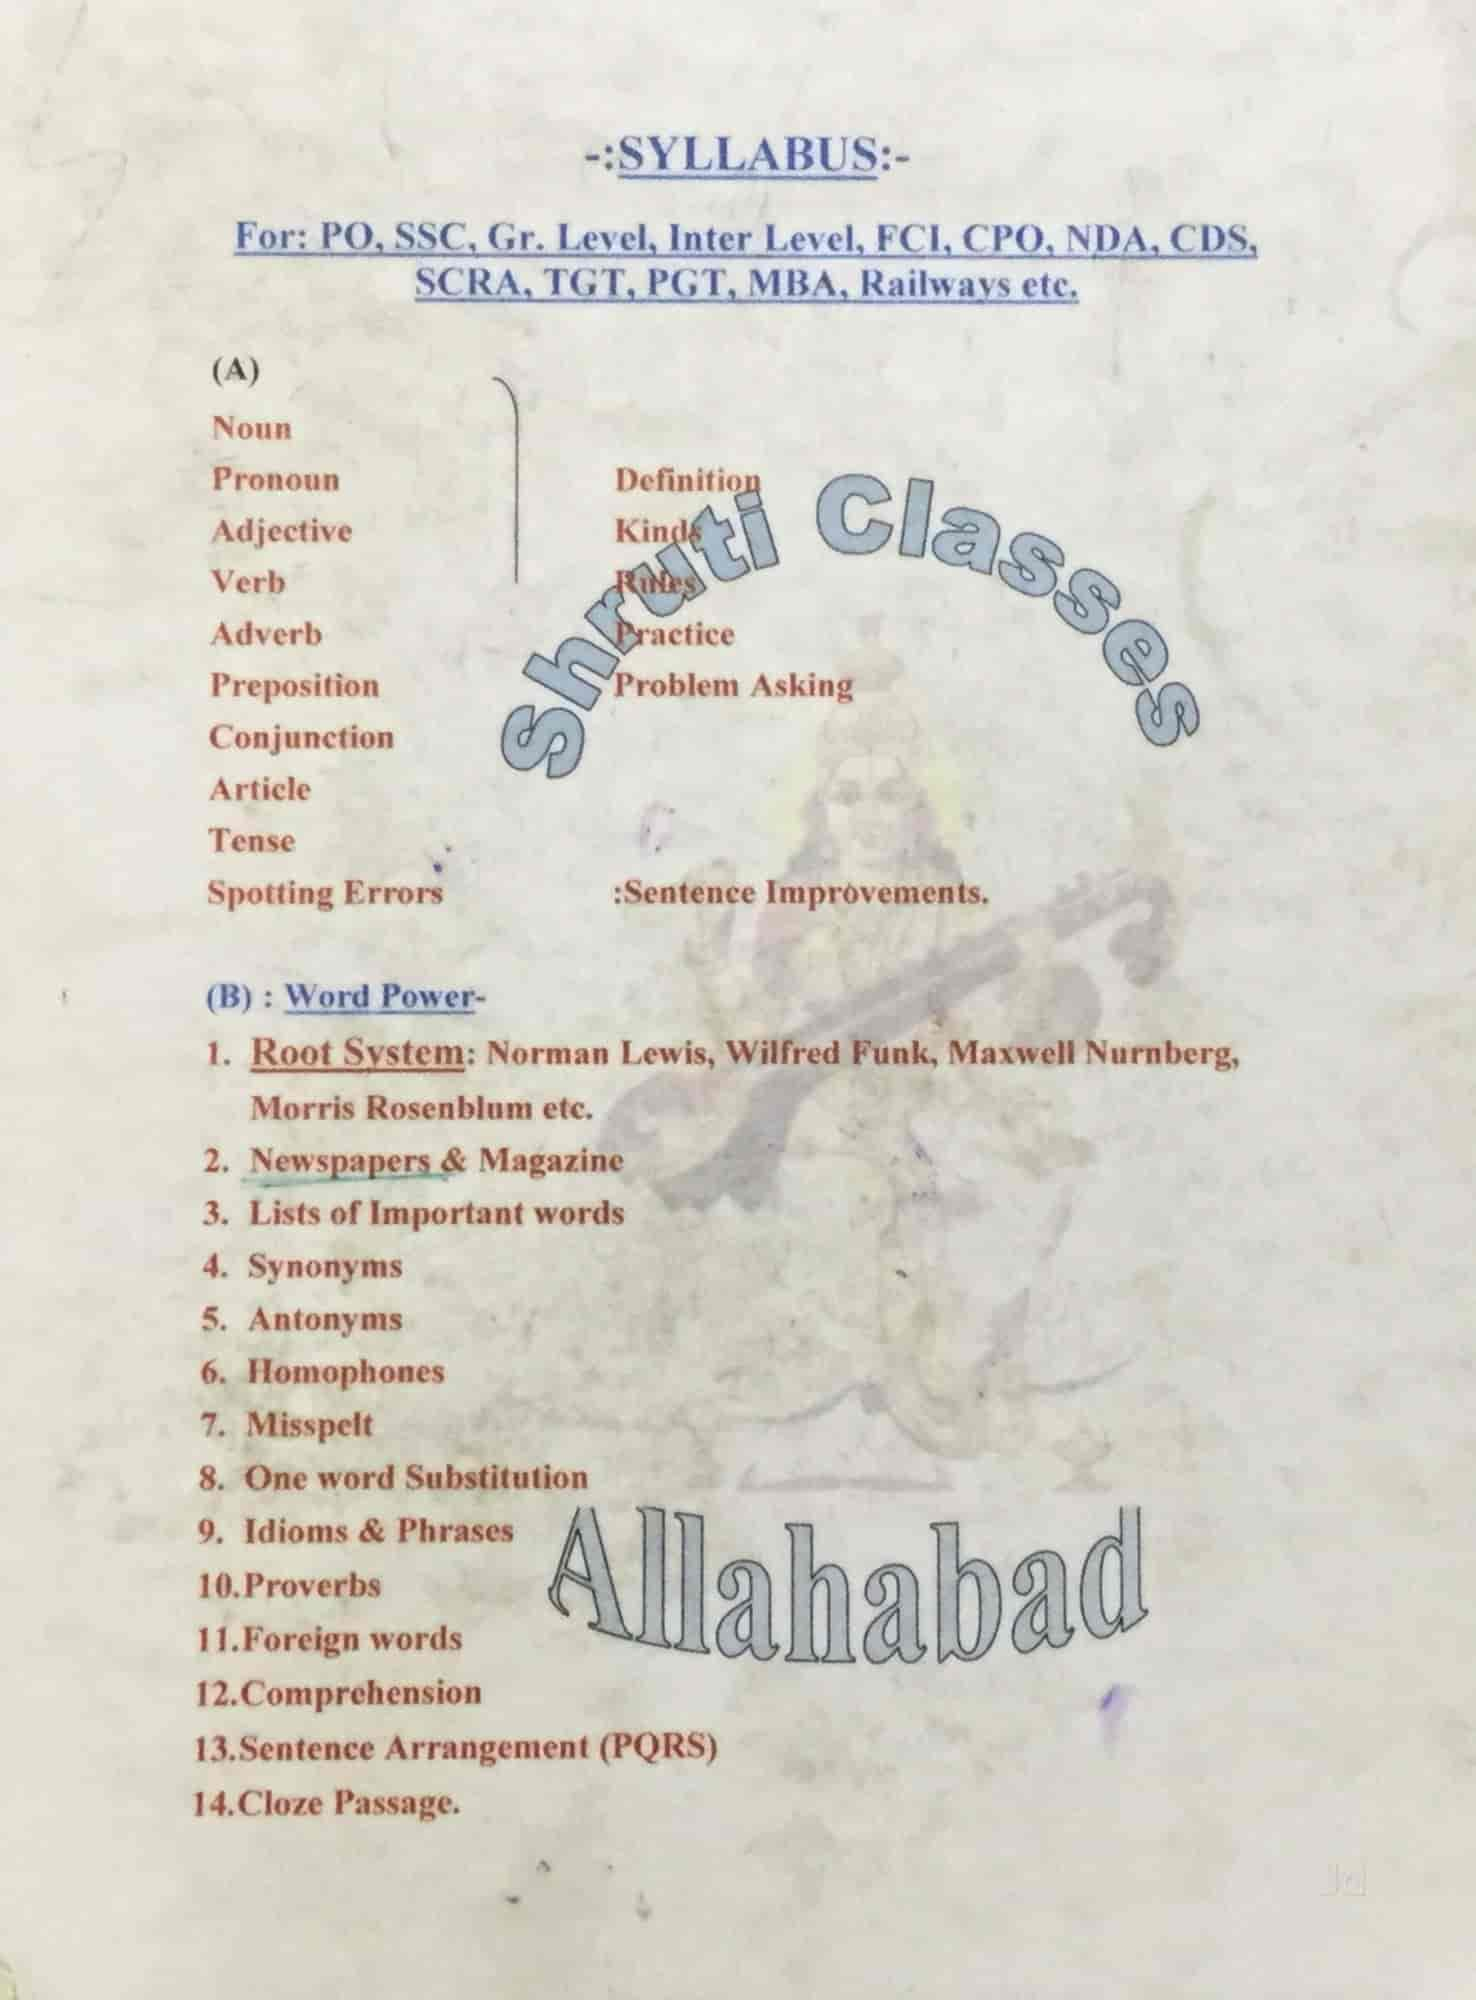 Shruti Classes, Stainly Road - Tutorials For English Grammar